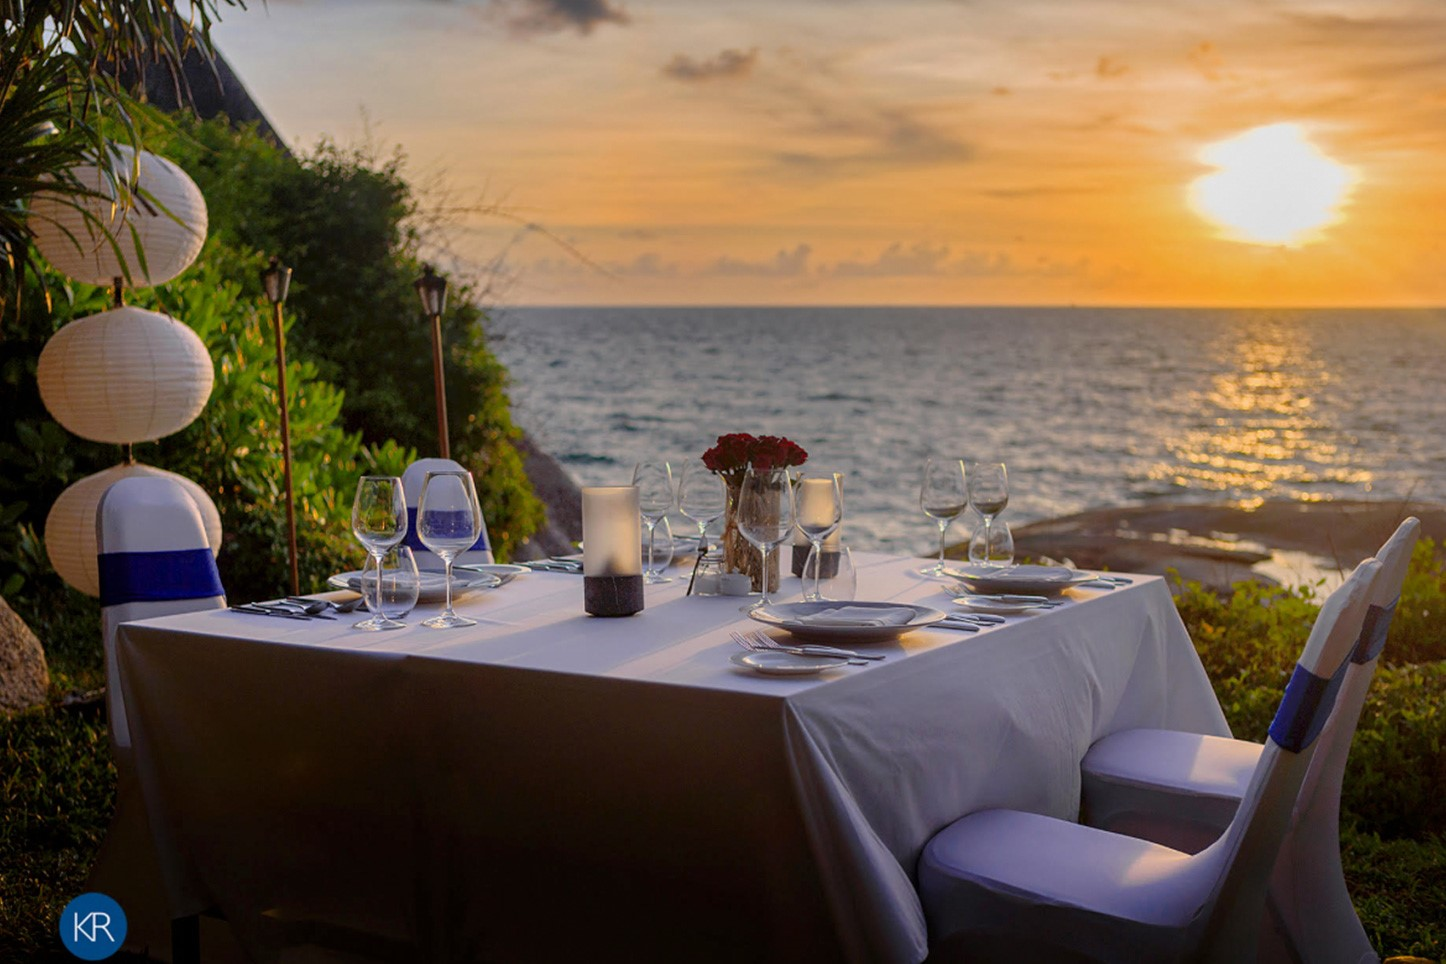 Romantic, seaside candle lit dining 'on the rocks' fronting the resort is a favourite with honeymooners or couples celebrating special occasions and available only at Kata Rocks.